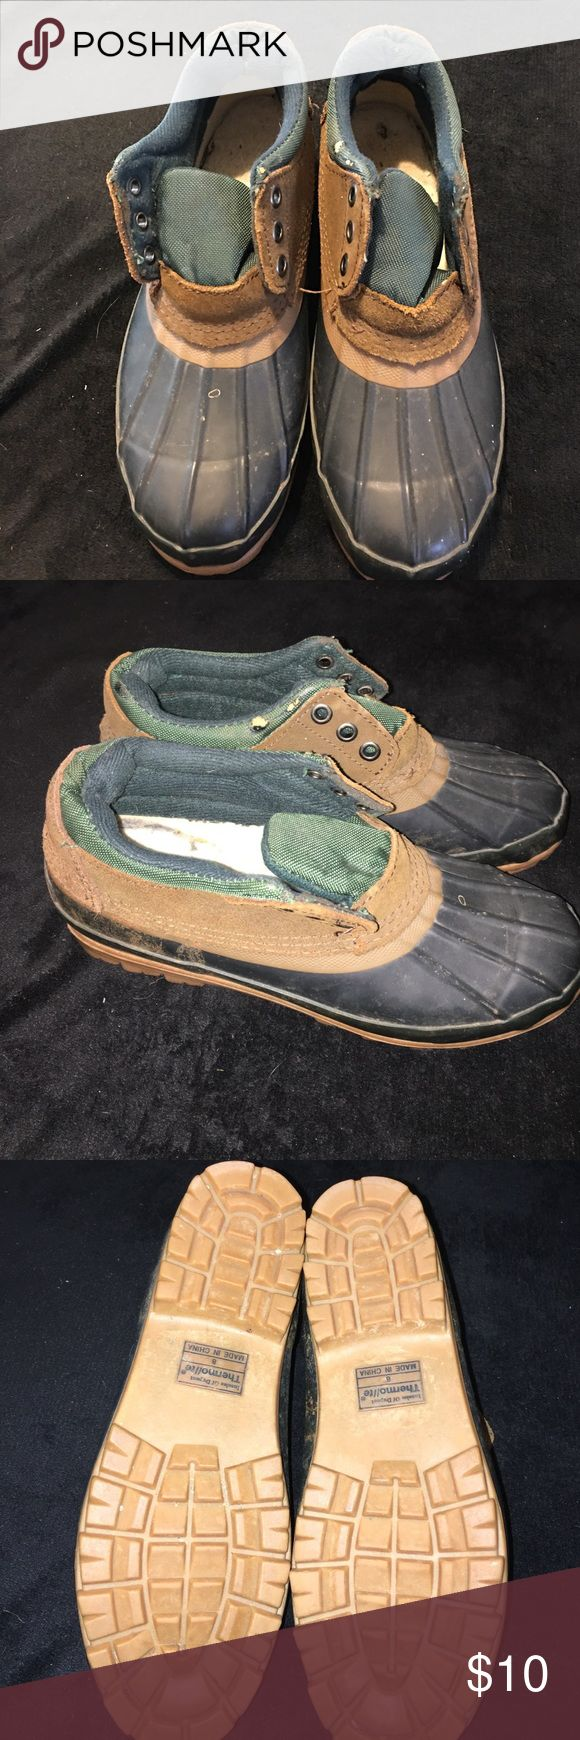 Woodstock rubber shoes. Size 8 Woodstock Rubber Shoes. Size 8. Thermolite insulation. No laces. Signs of wear. Waterproof. Woodstock Shoes Rain & Snow Boots